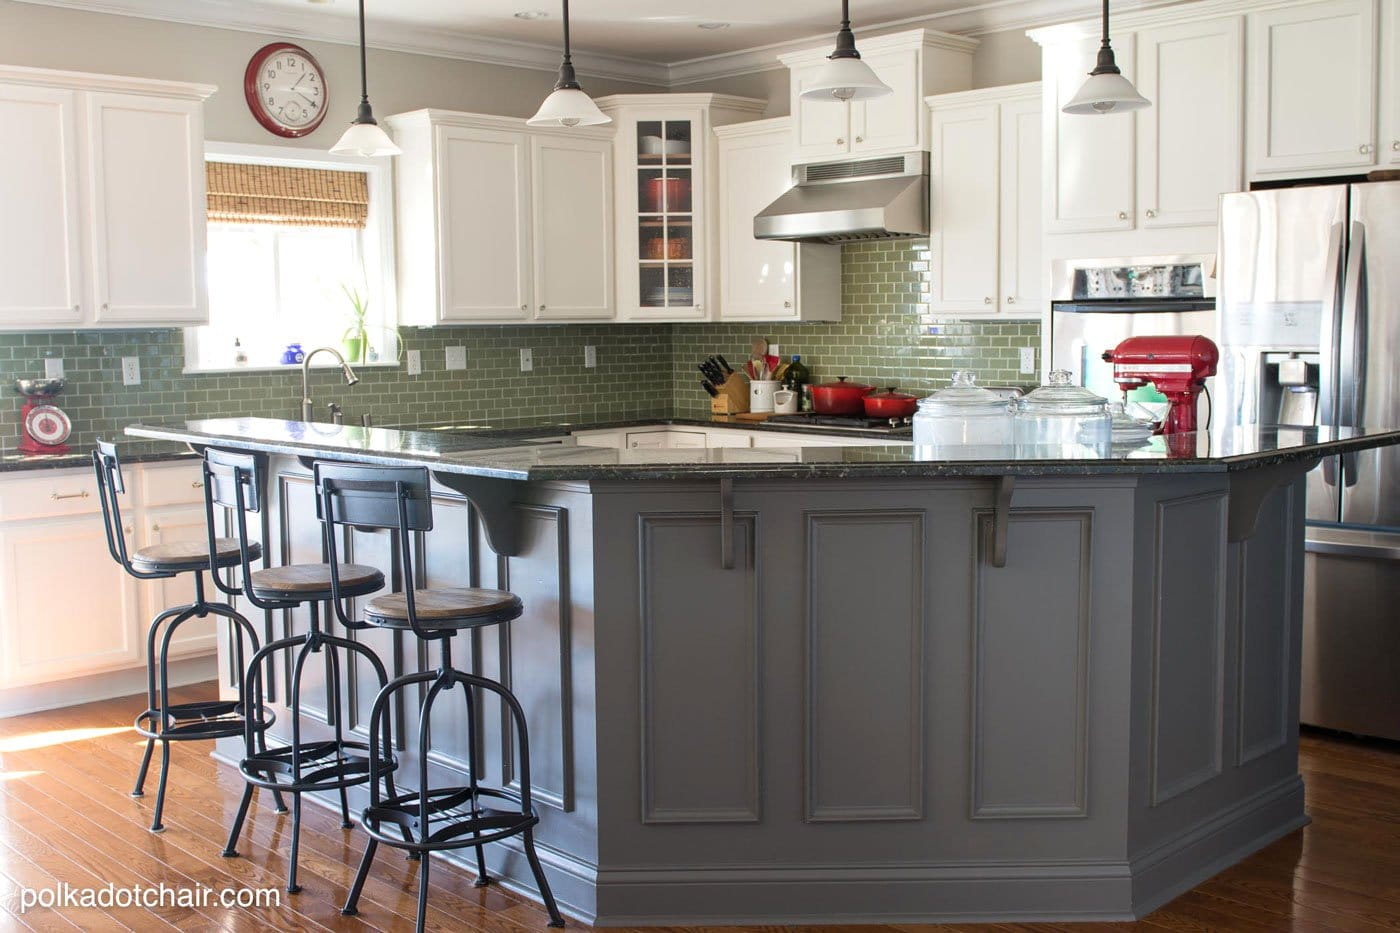 tips for painting kitchen cabinets paint kitchen cabinets white Before and After Photos of a Kitchen that had it s Cabinets Painted White lots of